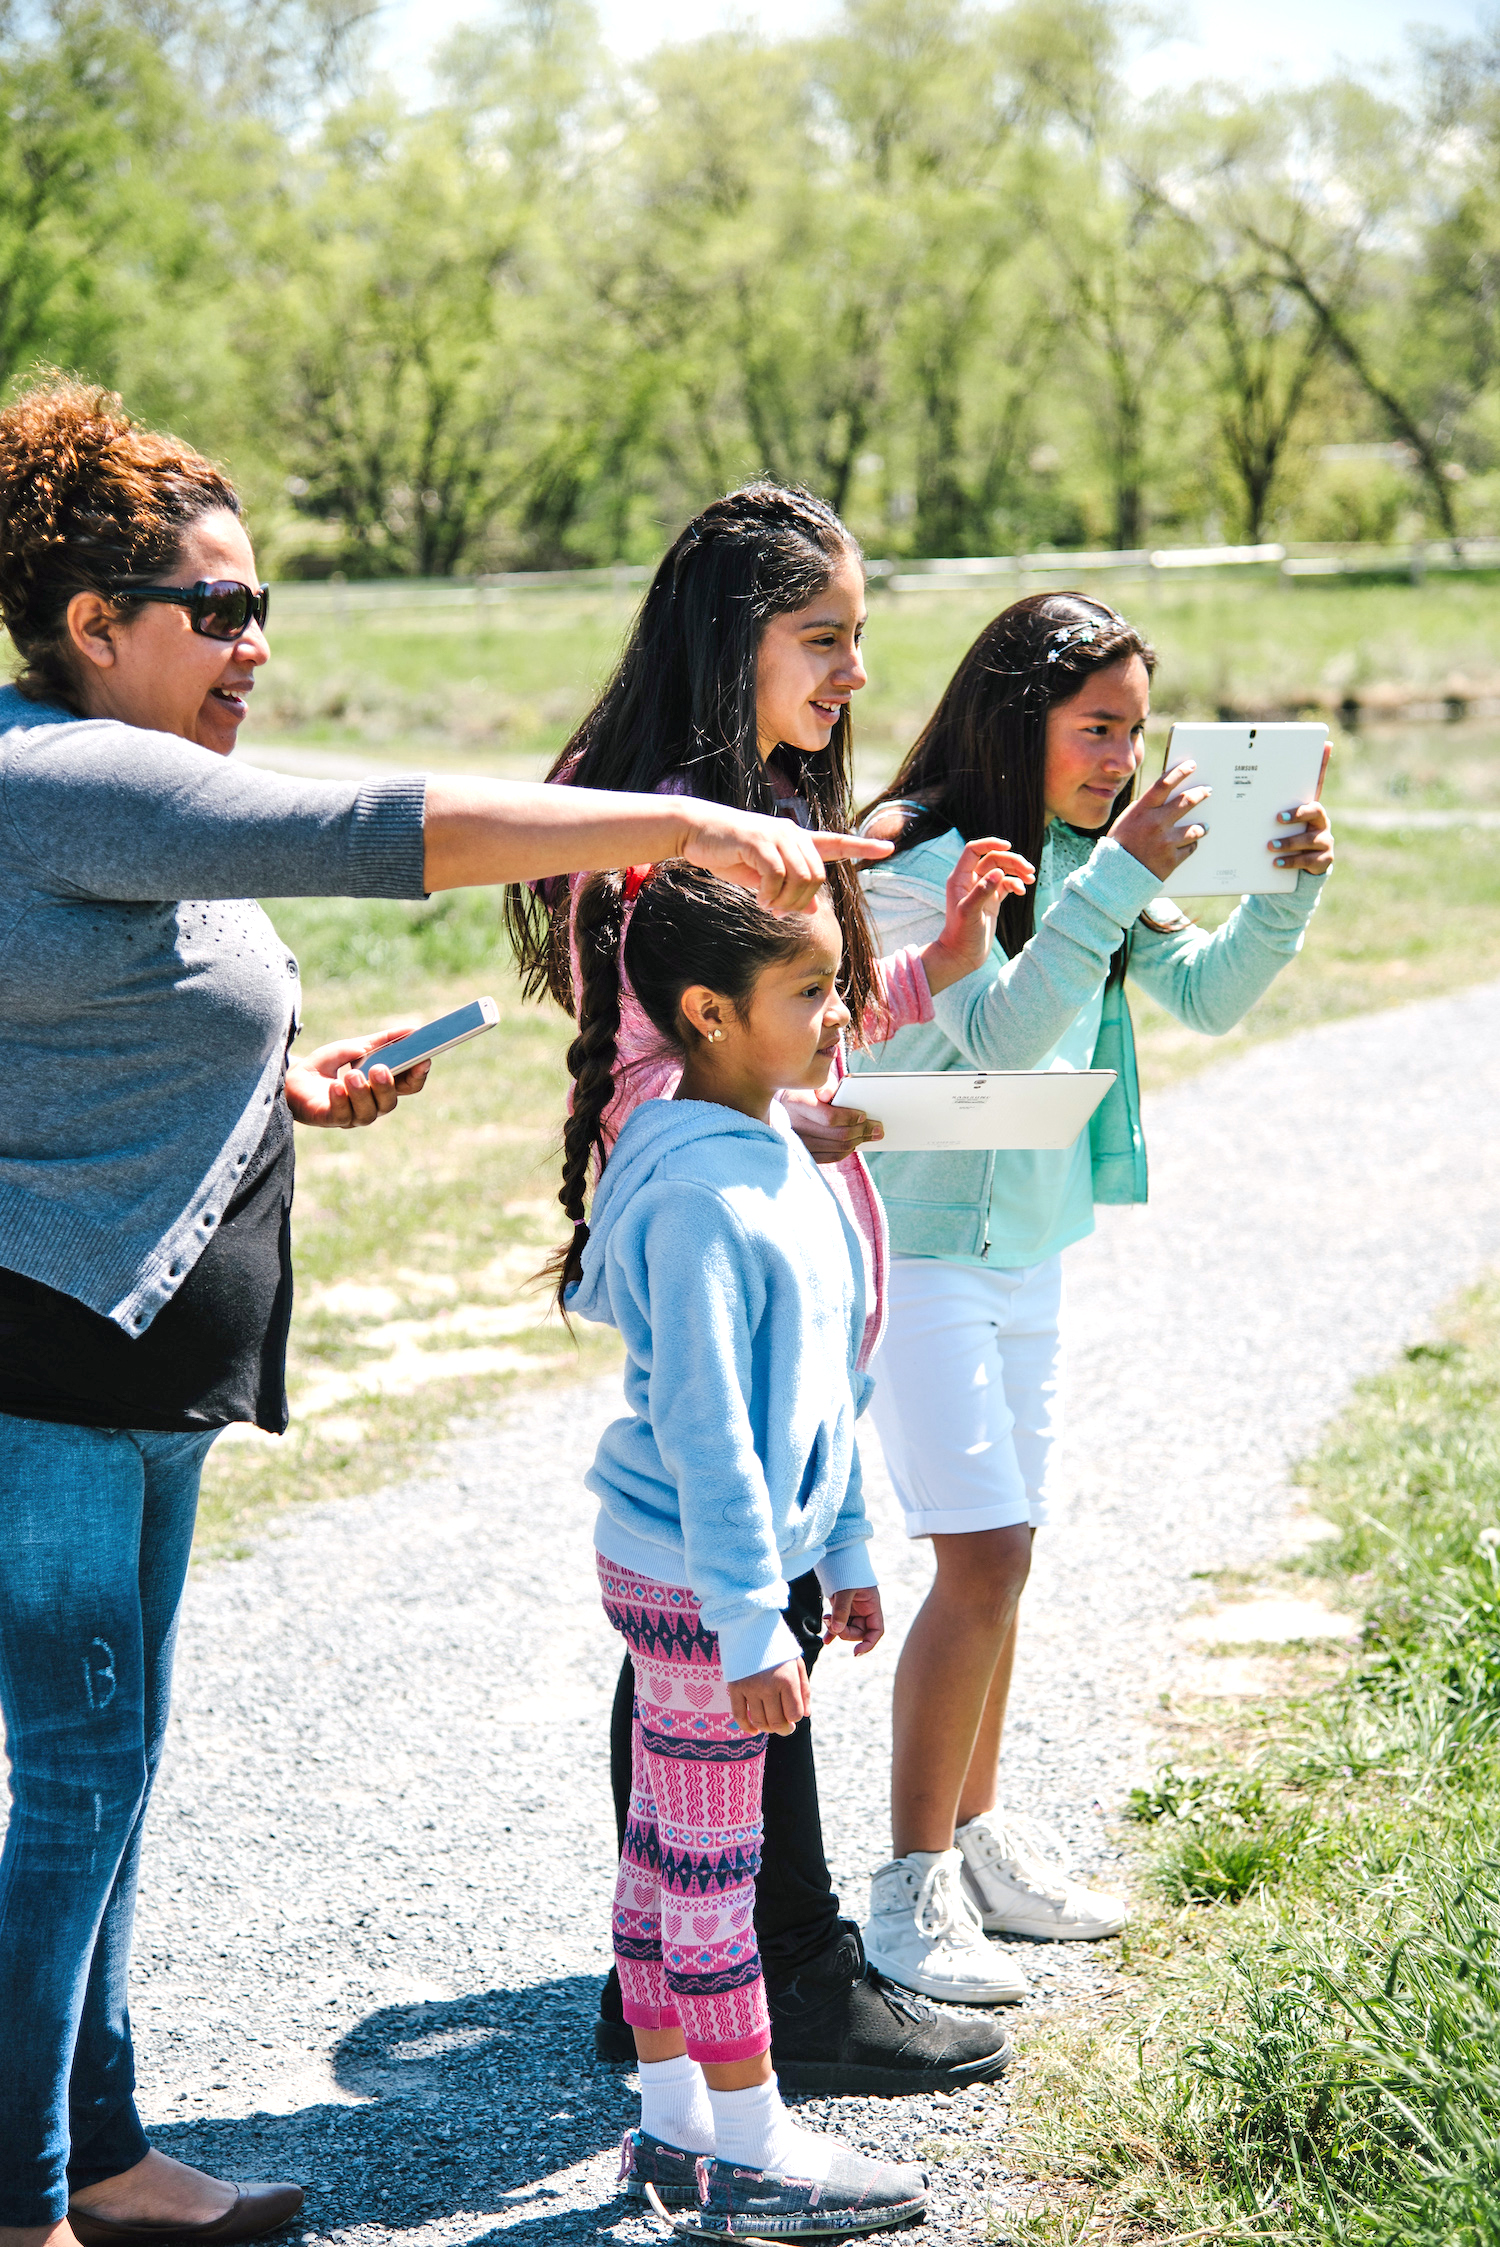 A mother and three girls taking photos of the wildlife at the Fife Wetland Preserve.